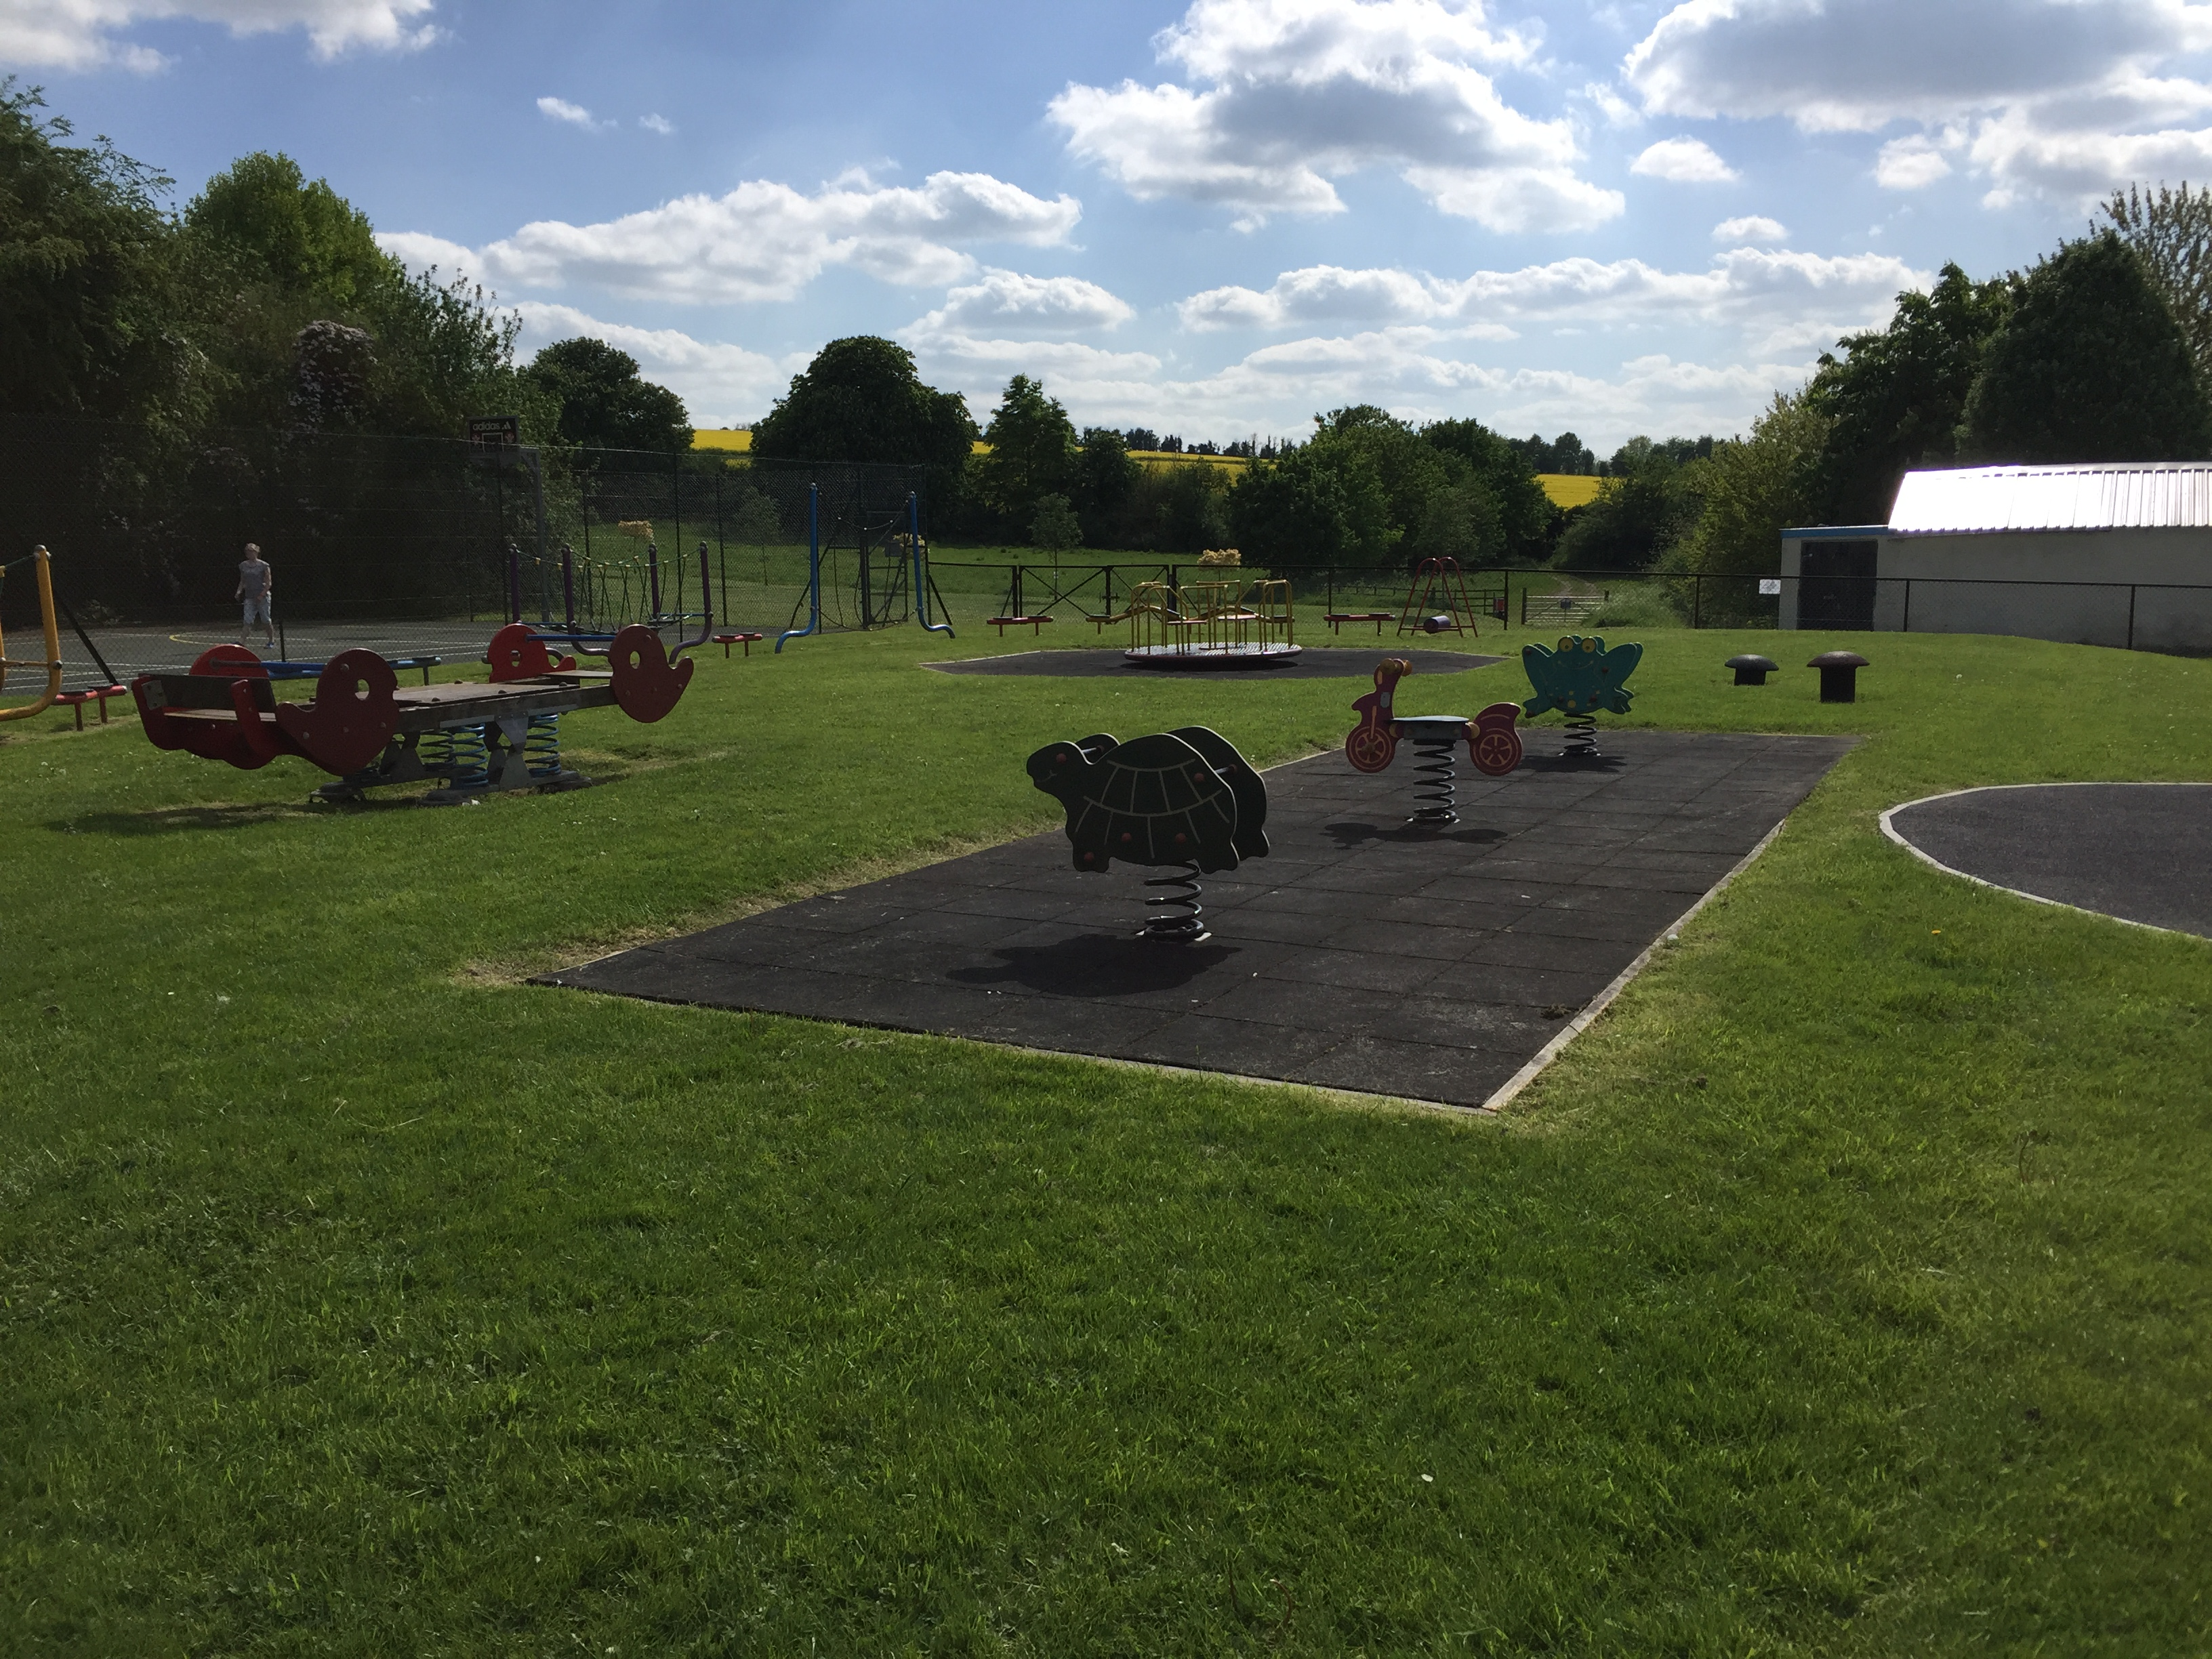 East Challow Recreation Ground